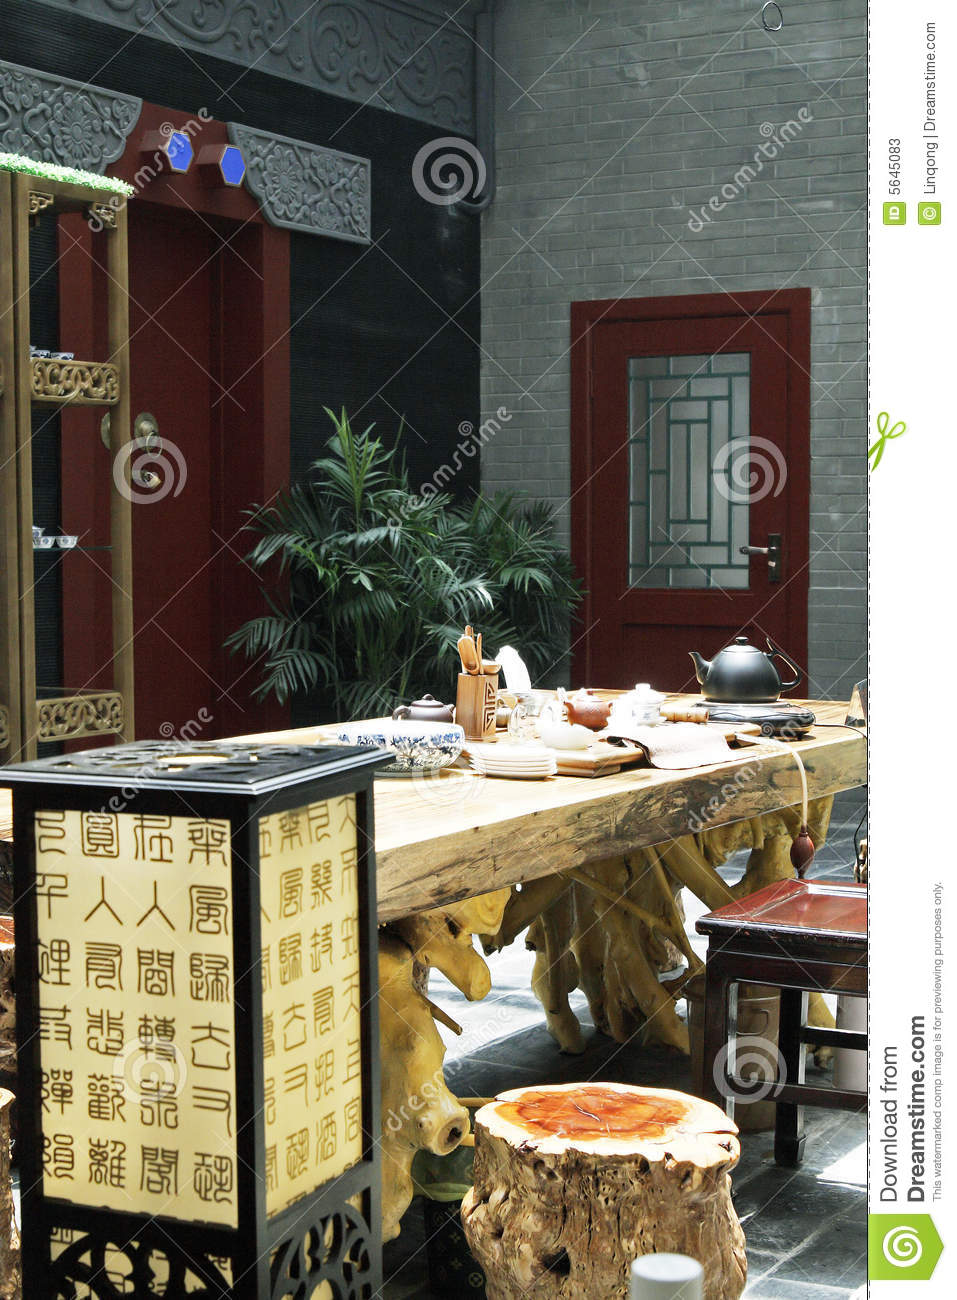 Ancient teahouse of China. stock image. Image of usually - 5645083 on family design, construction design, tea houses in new jersey, casino design, asian design, hedge design, japanese design, southwestern design, african design, fusion design, sidewalk design, sauna design, pavilion design, international design, grain silo design, travel agency design, irish design, tea room, cast iron design, winery design,